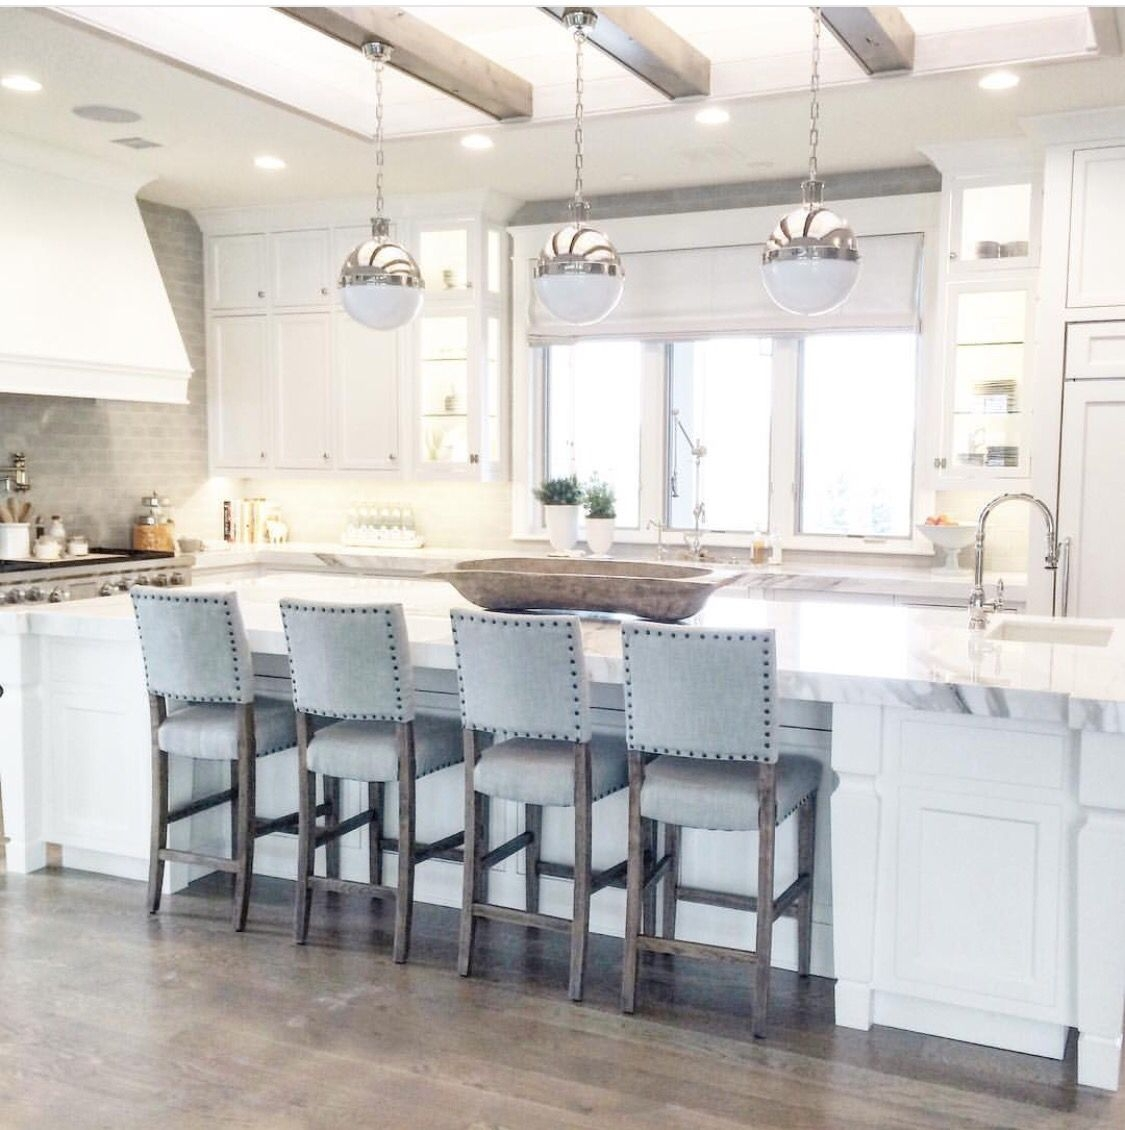 Kitchen Island With Bar Stools You Ll Love In 2021 Visualhunt